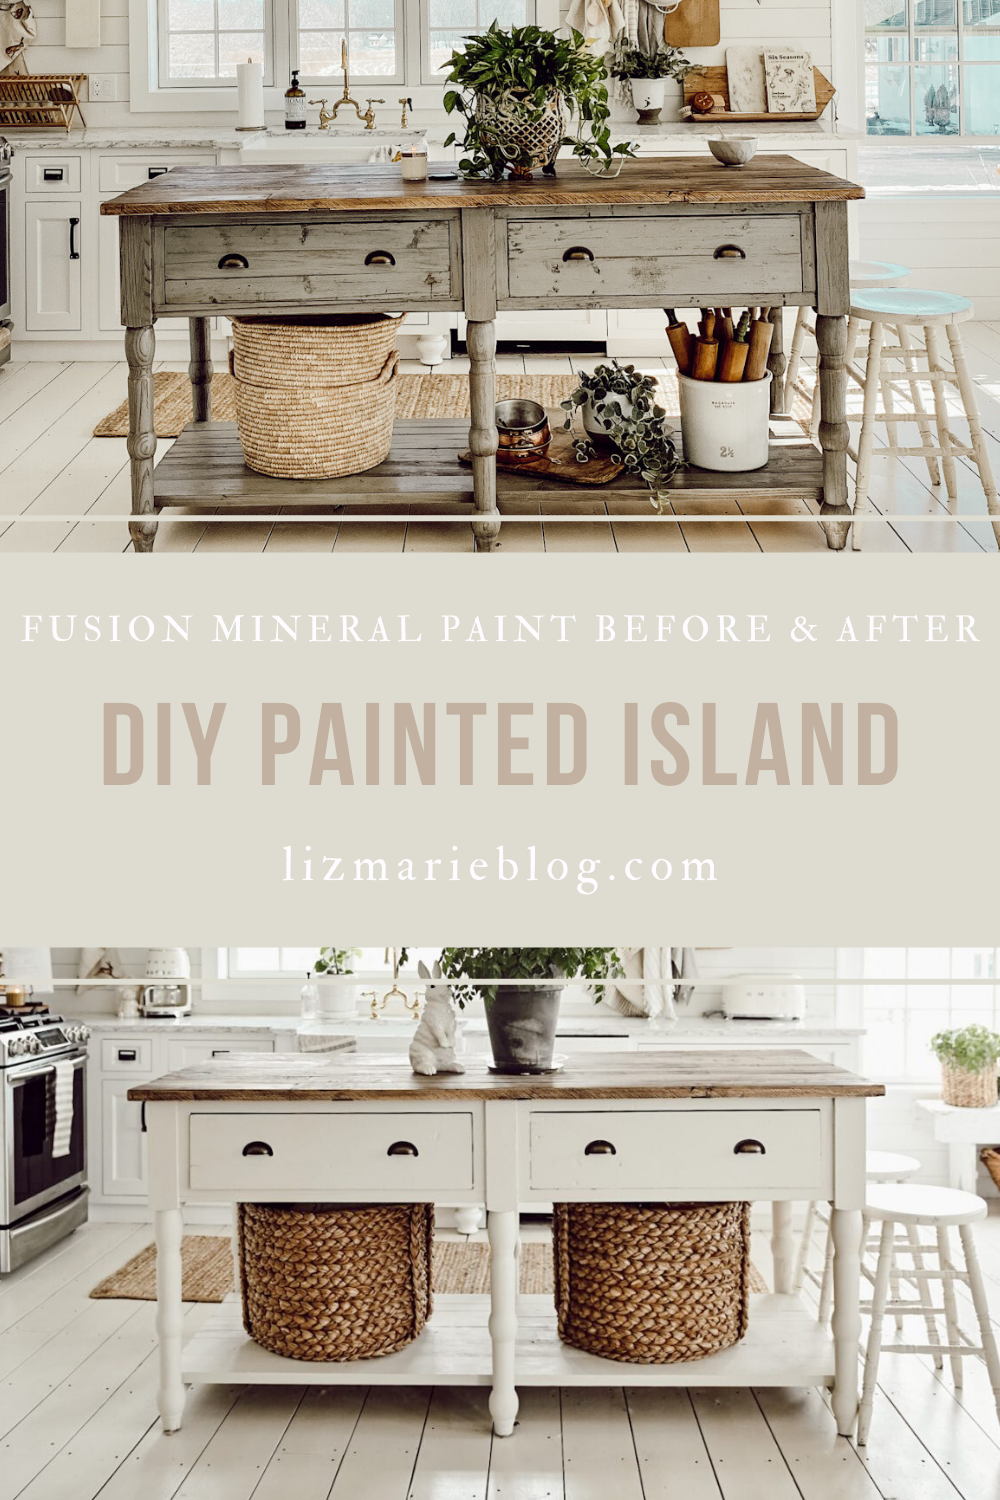 Painted Kitchen Before And After Photos Fusion Mineral Paint Little Lamb Kitchen Reno Kitchen Remodel Photos Kitchen Design Decor Small Kitchen Renovations